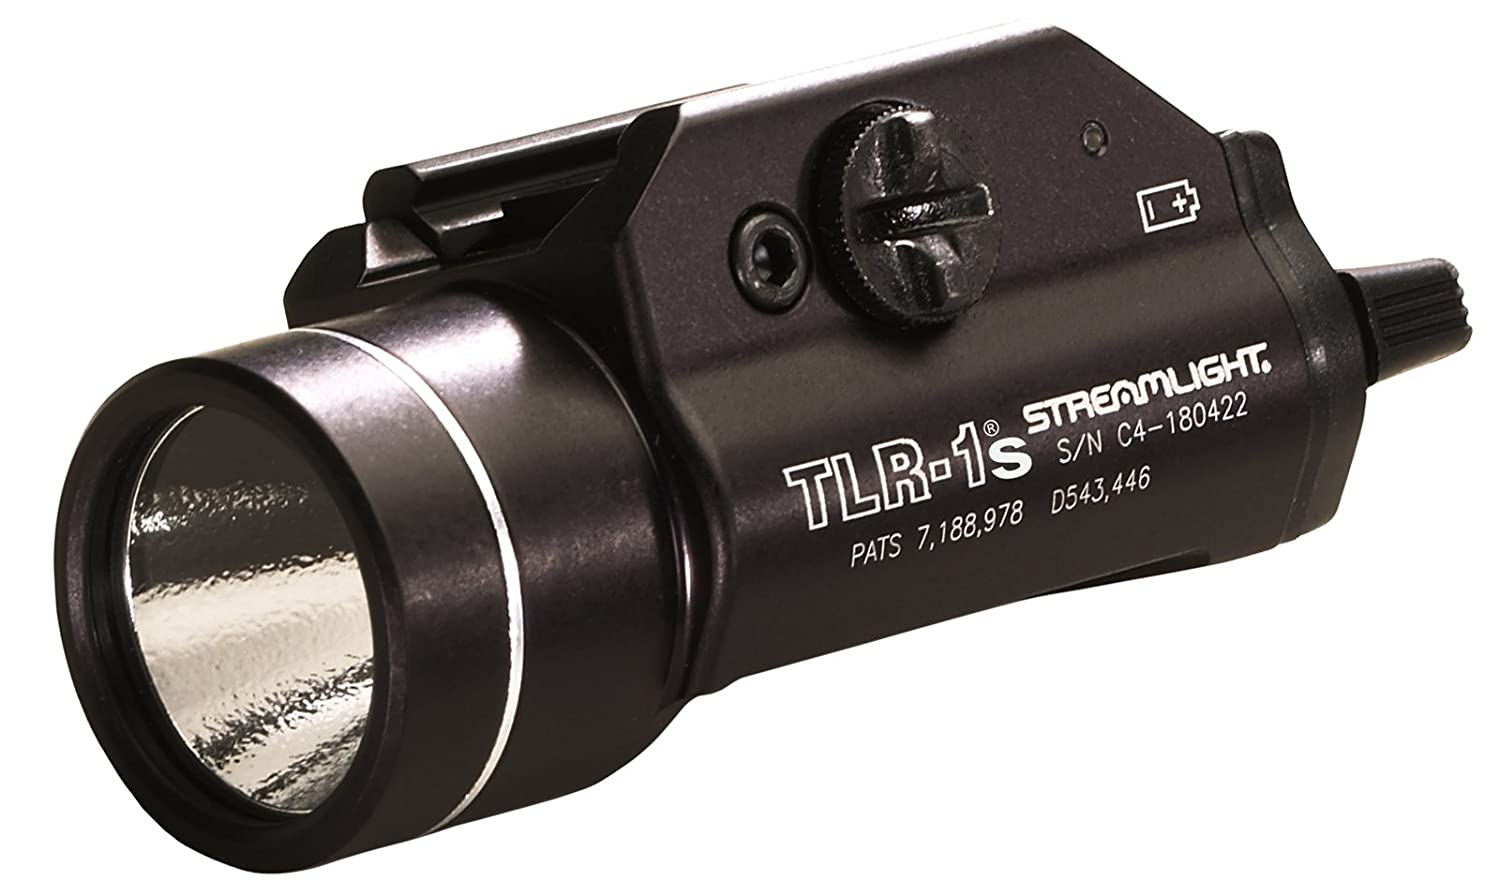 Streamlight 69210 TLR-1s with Rail Locating Keys